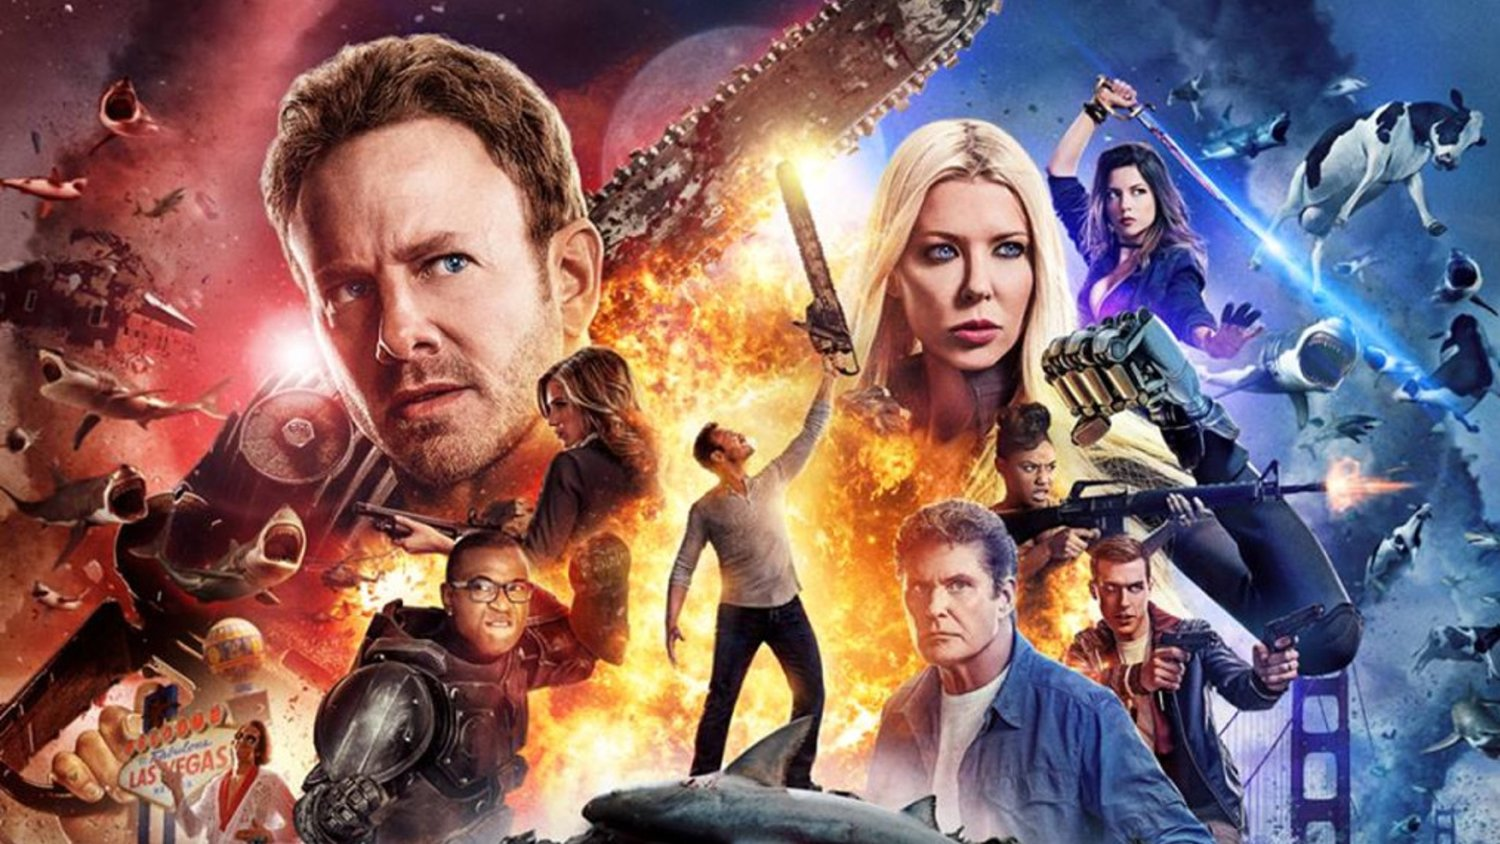 SHARKNADO 5 Has Been Announced and Is Currently in Production